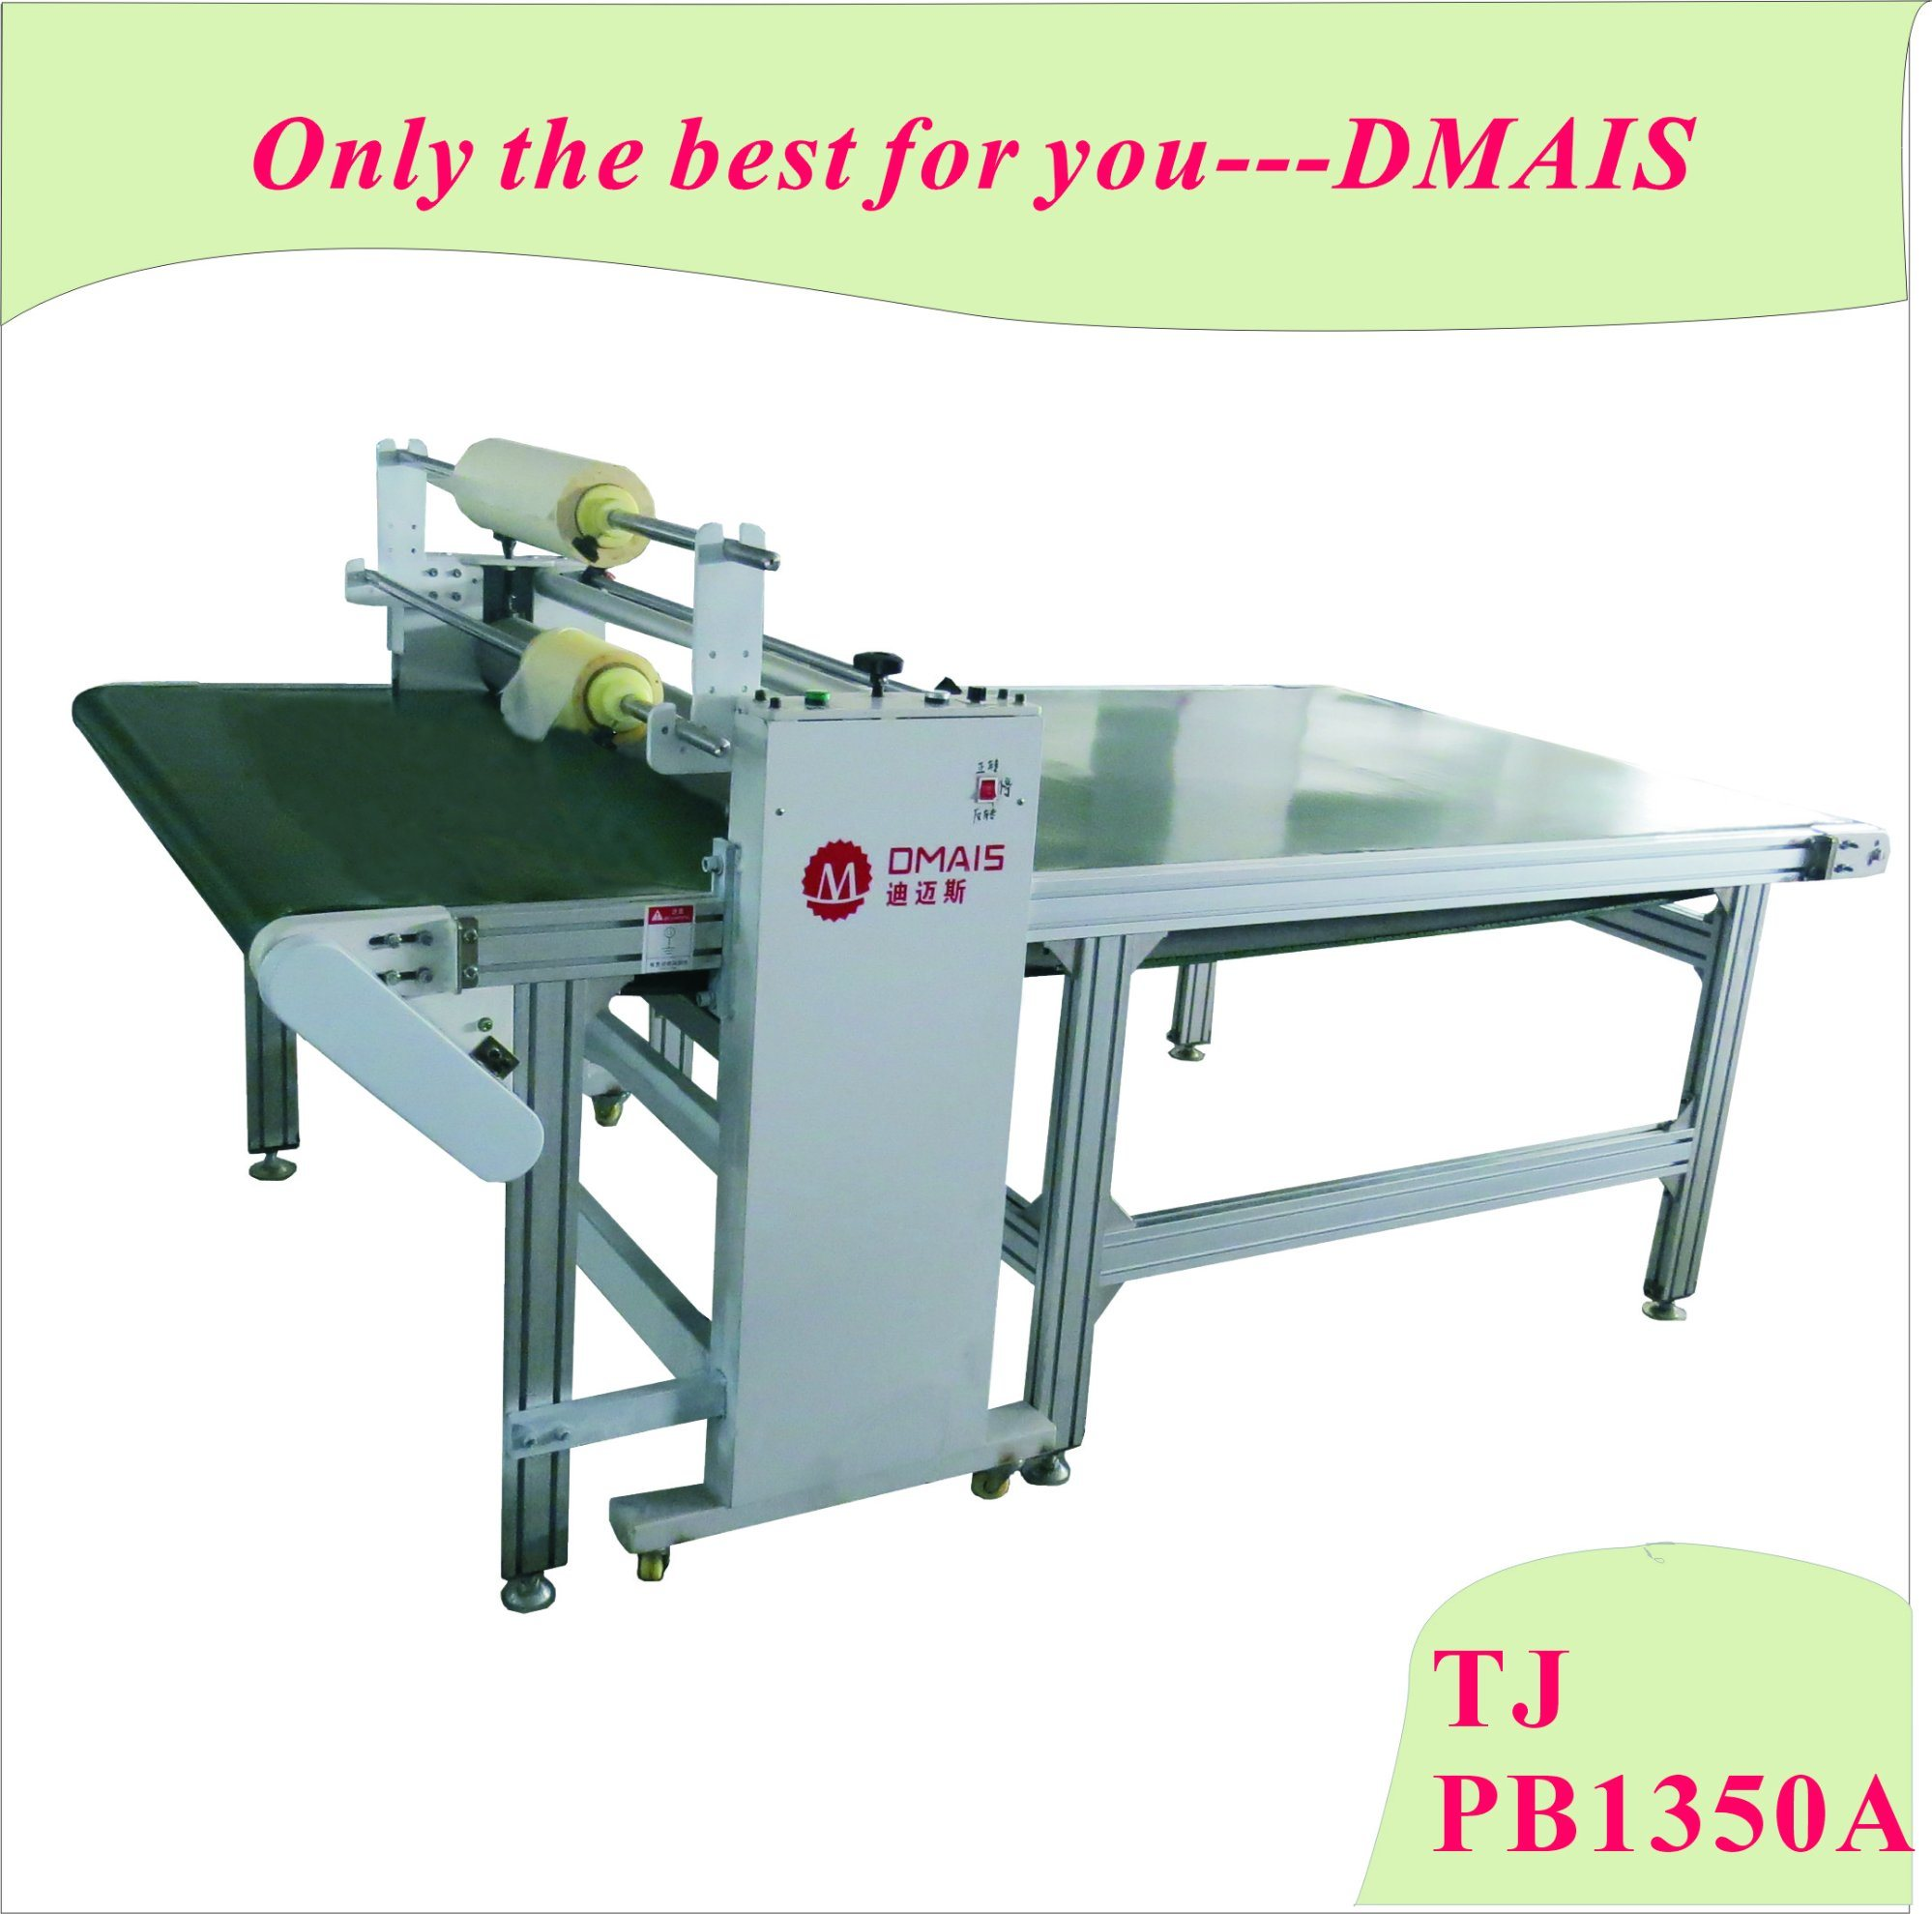 Tj-Pb1350A Automatic Flatbed Laminator with 1.6 Meter